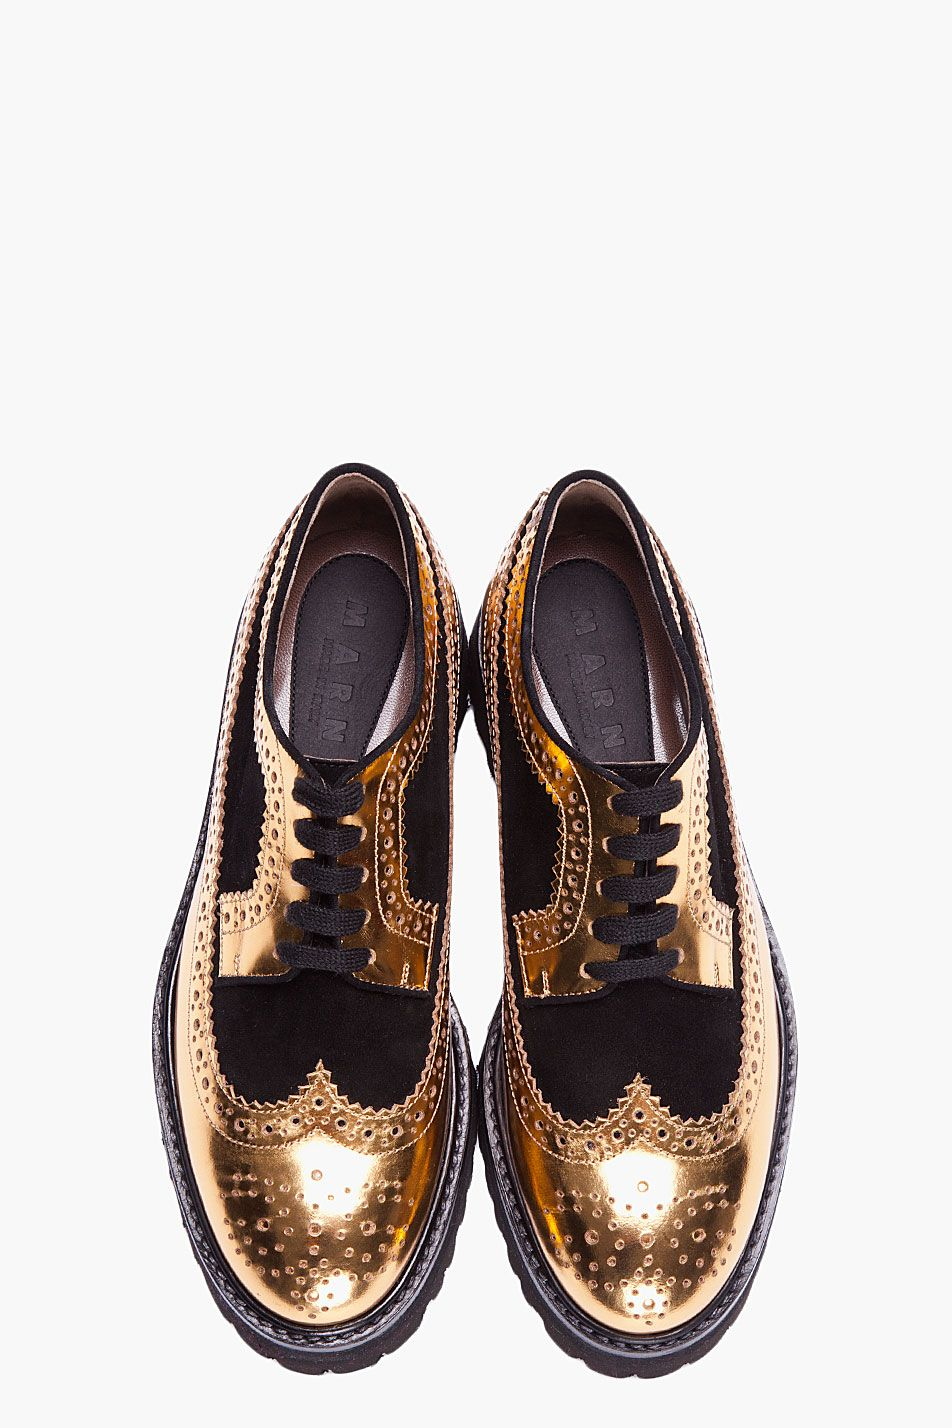 b31970f8e94 Women s Metallic Gold Leather and Suede Platform Brogues